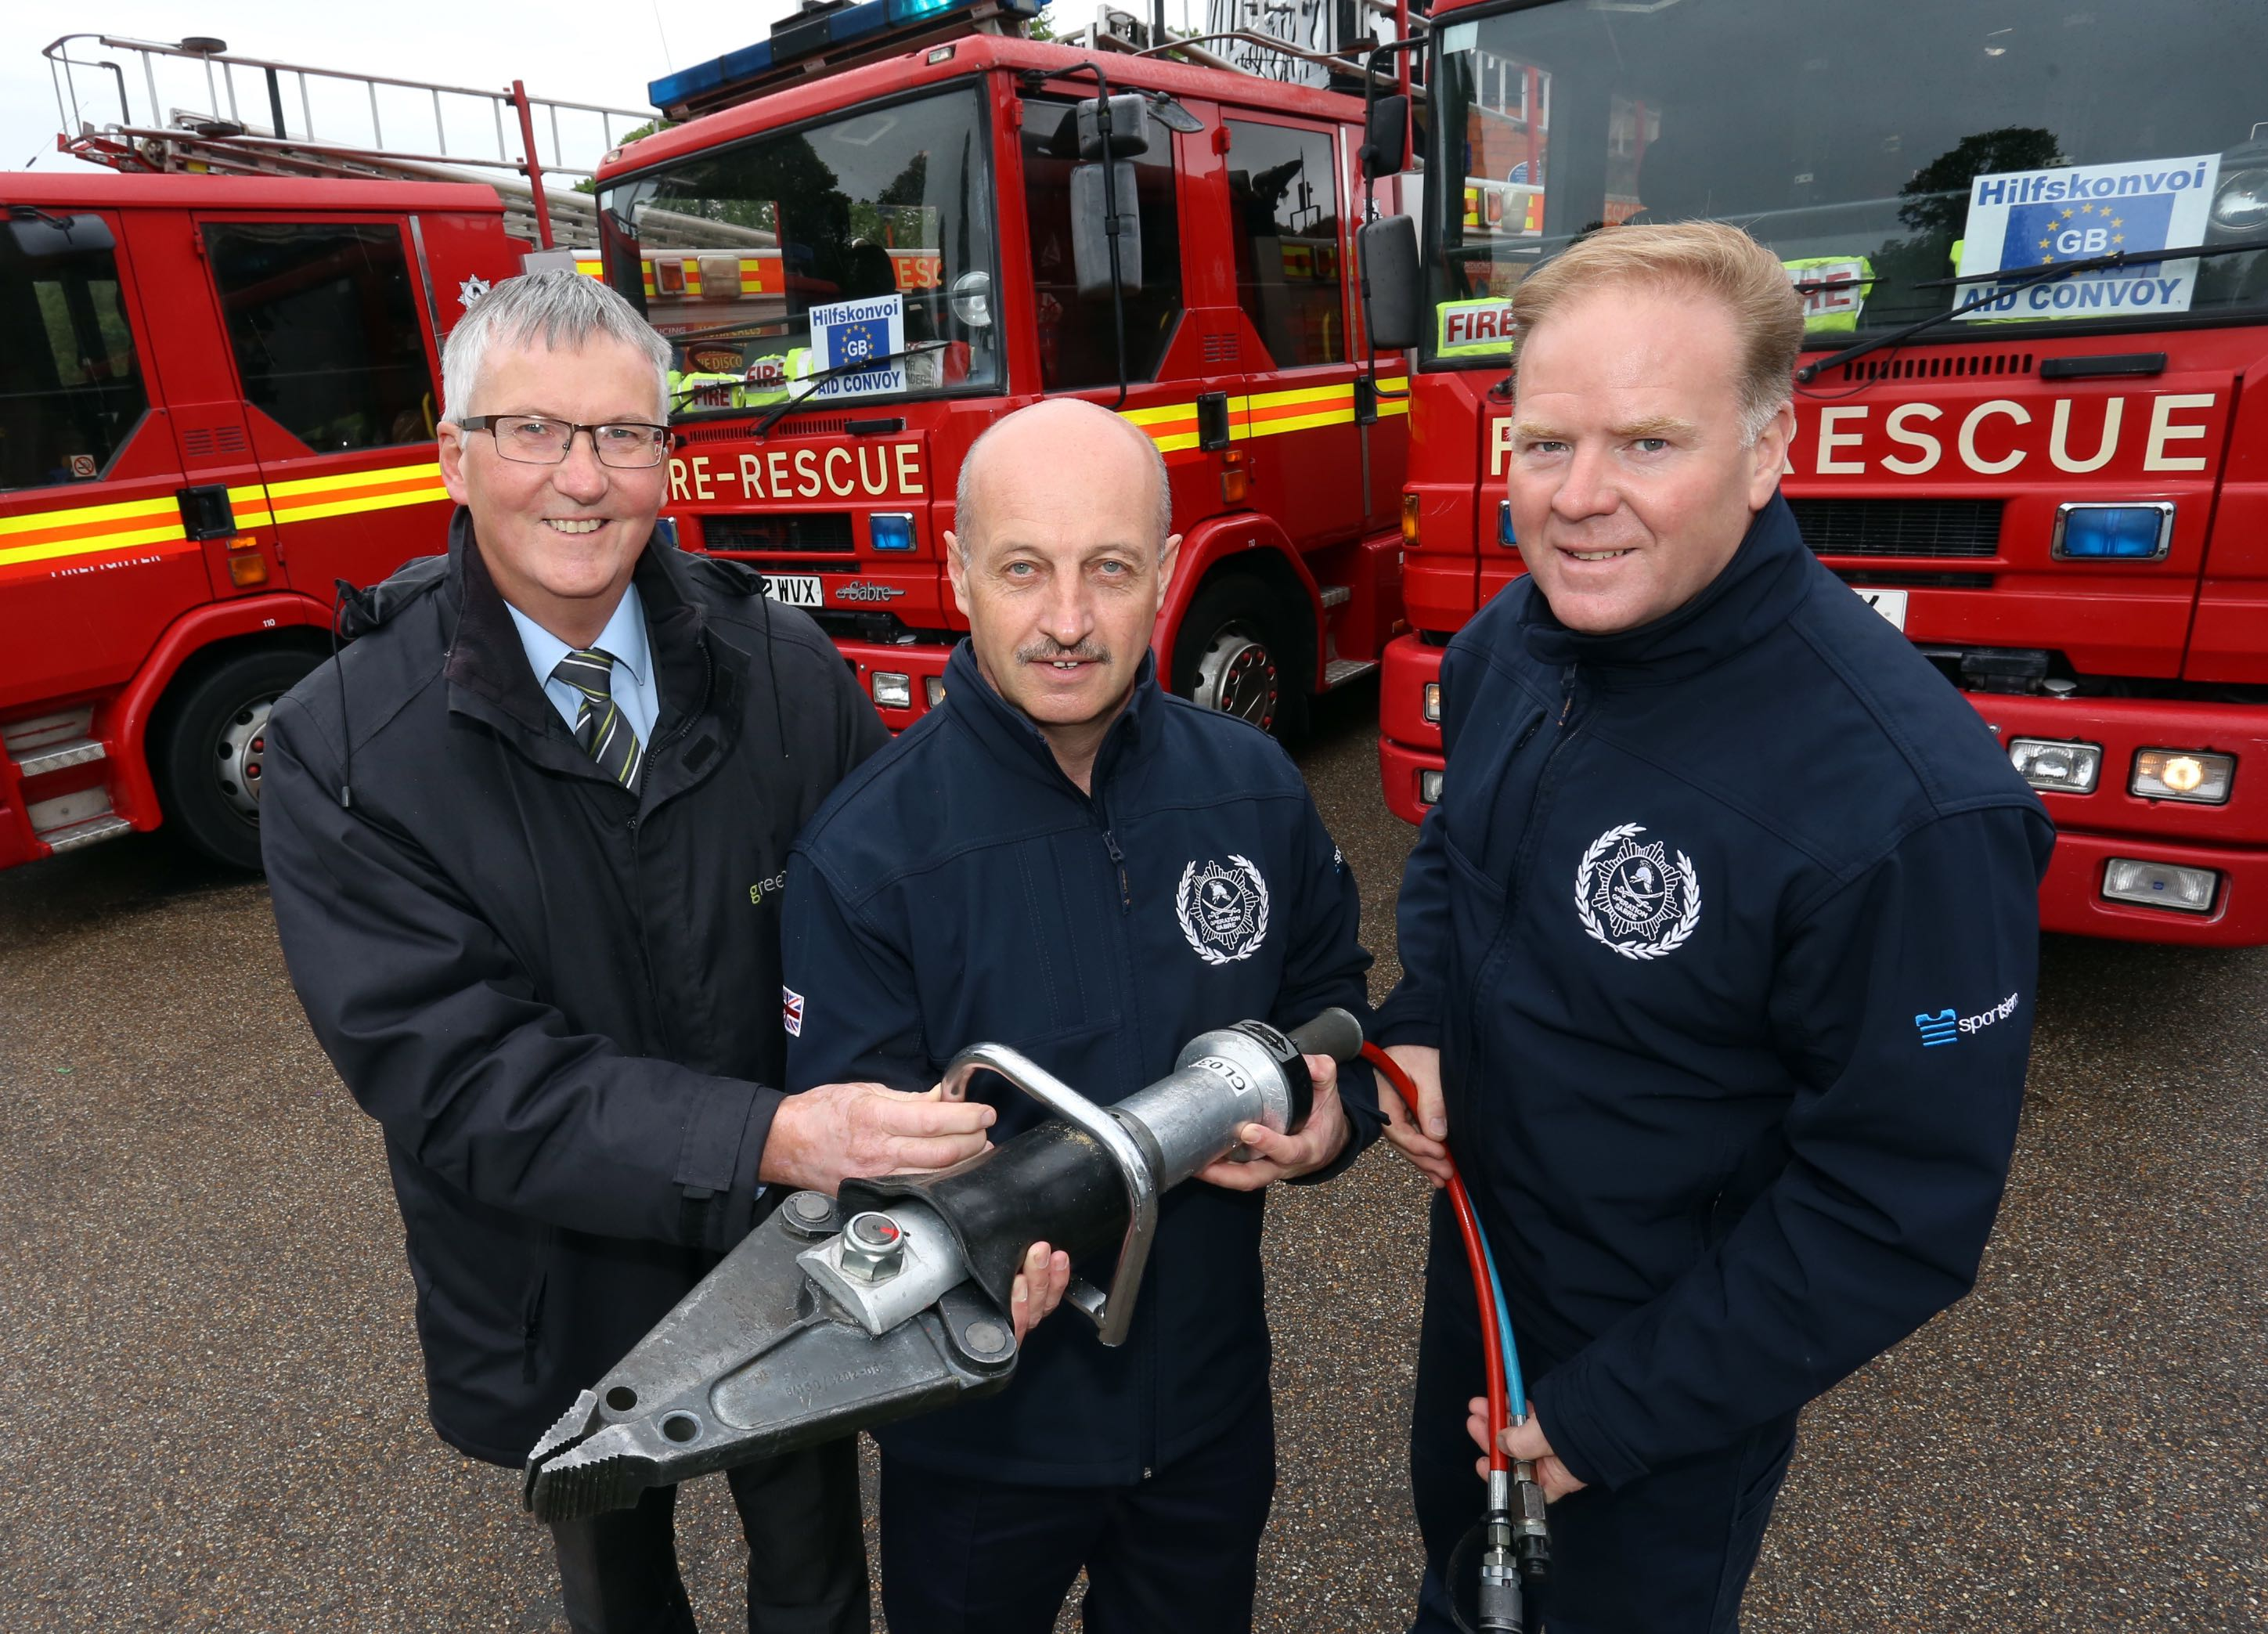 Martin James, (left) of Greenhous, Shrewsbury presents Steve Worrall, with the cutting equipment, pictured with Malcolm Price, a retired firefighter and former member of Shropshire and Wrekin Fire Authority.